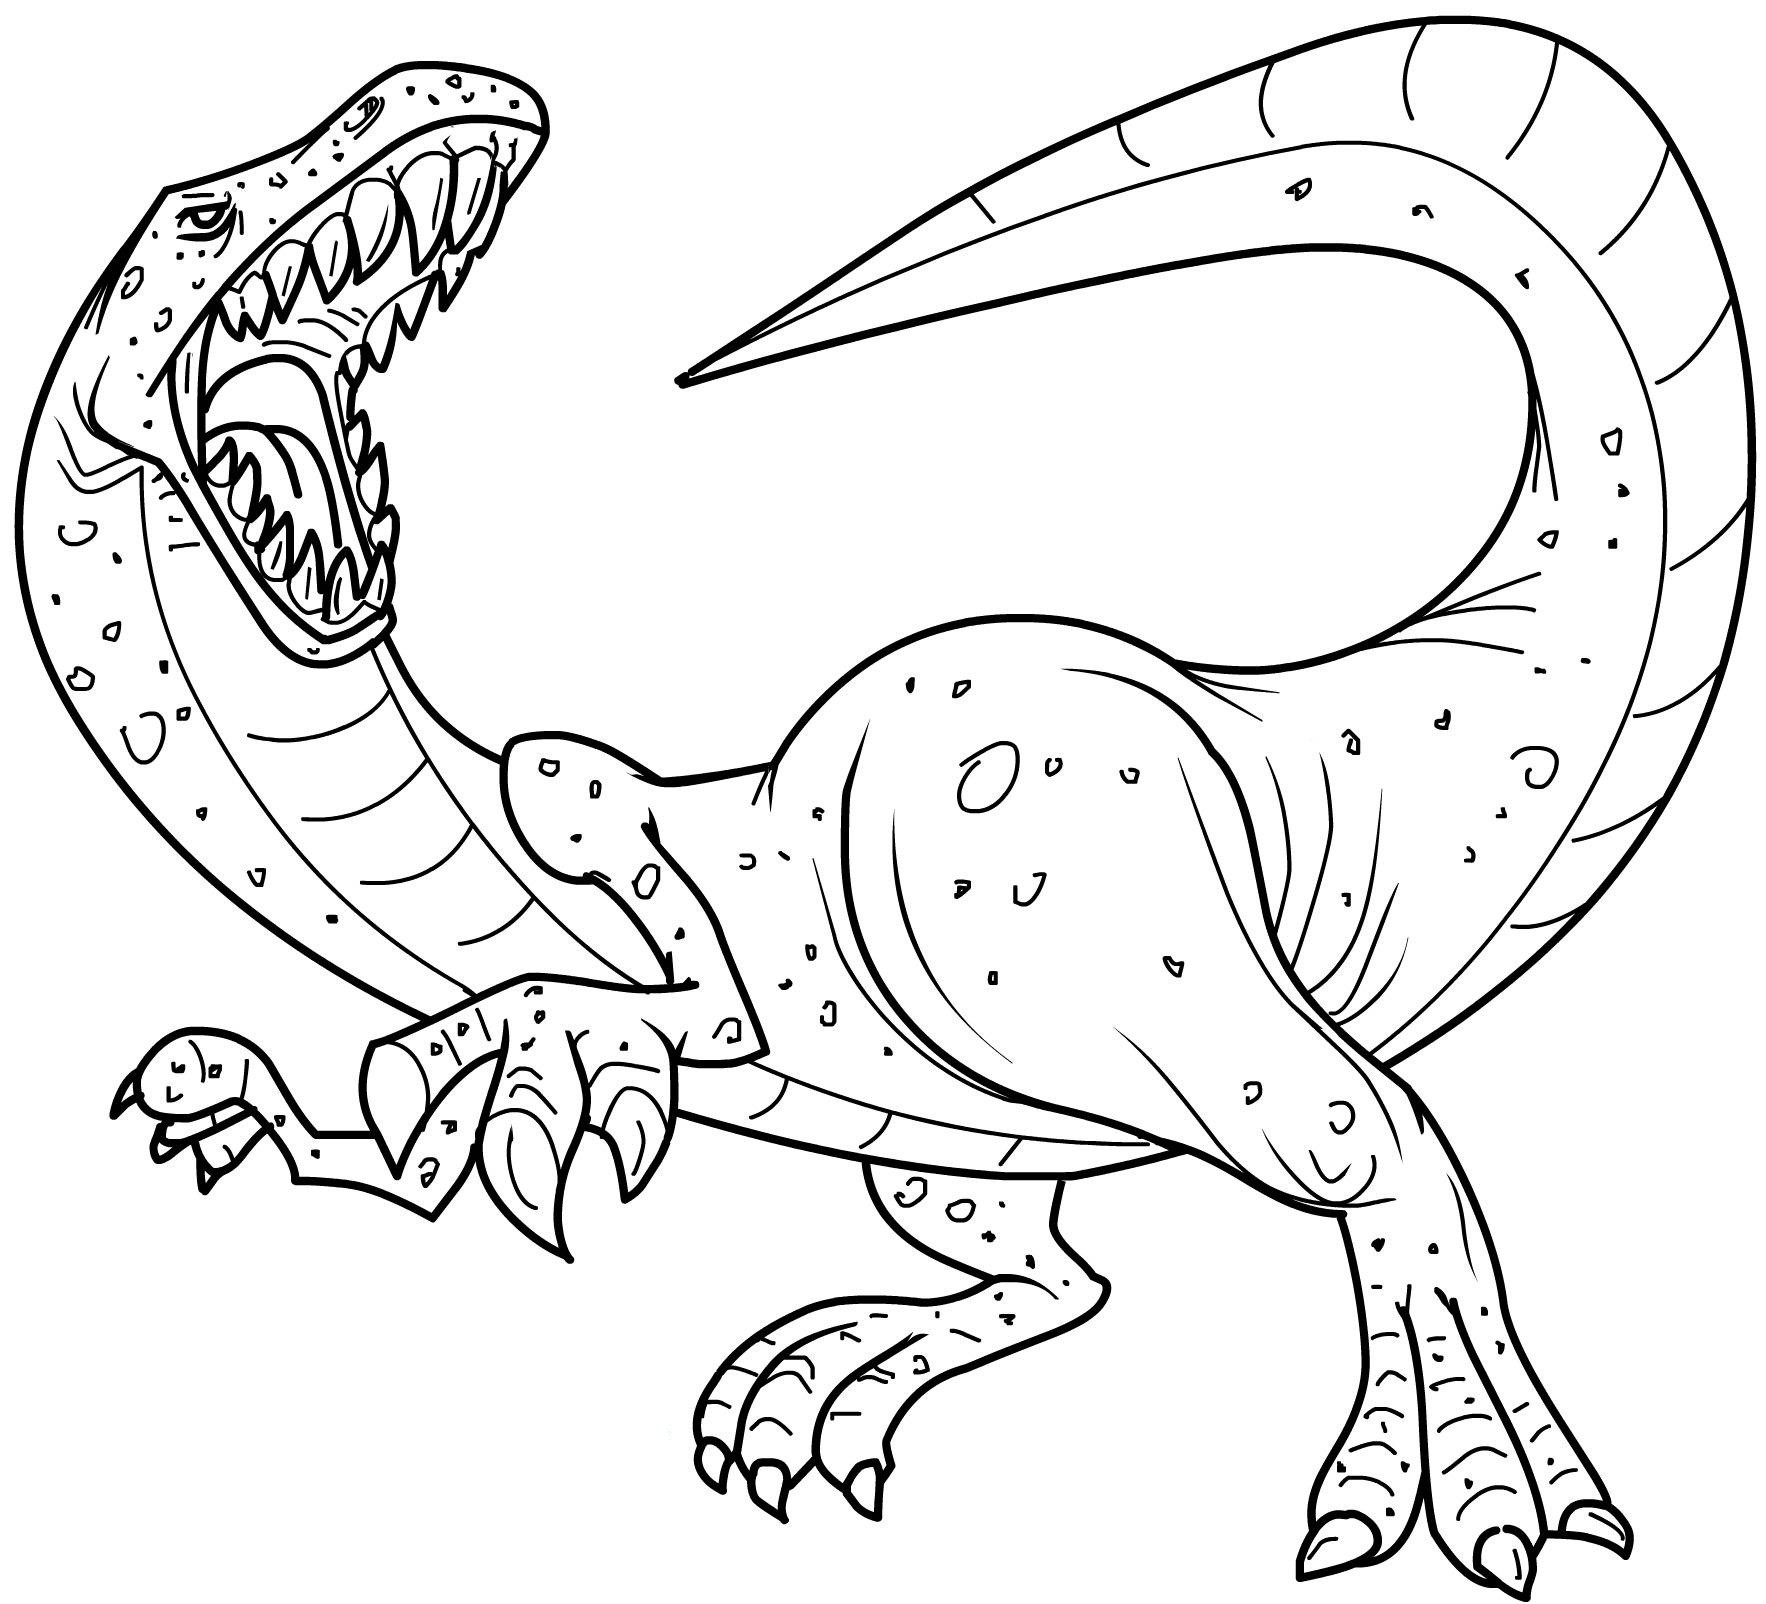 dinasour coloring pages printable dinosaur coloring pages for kids cool2bkids dinasour pages coloring